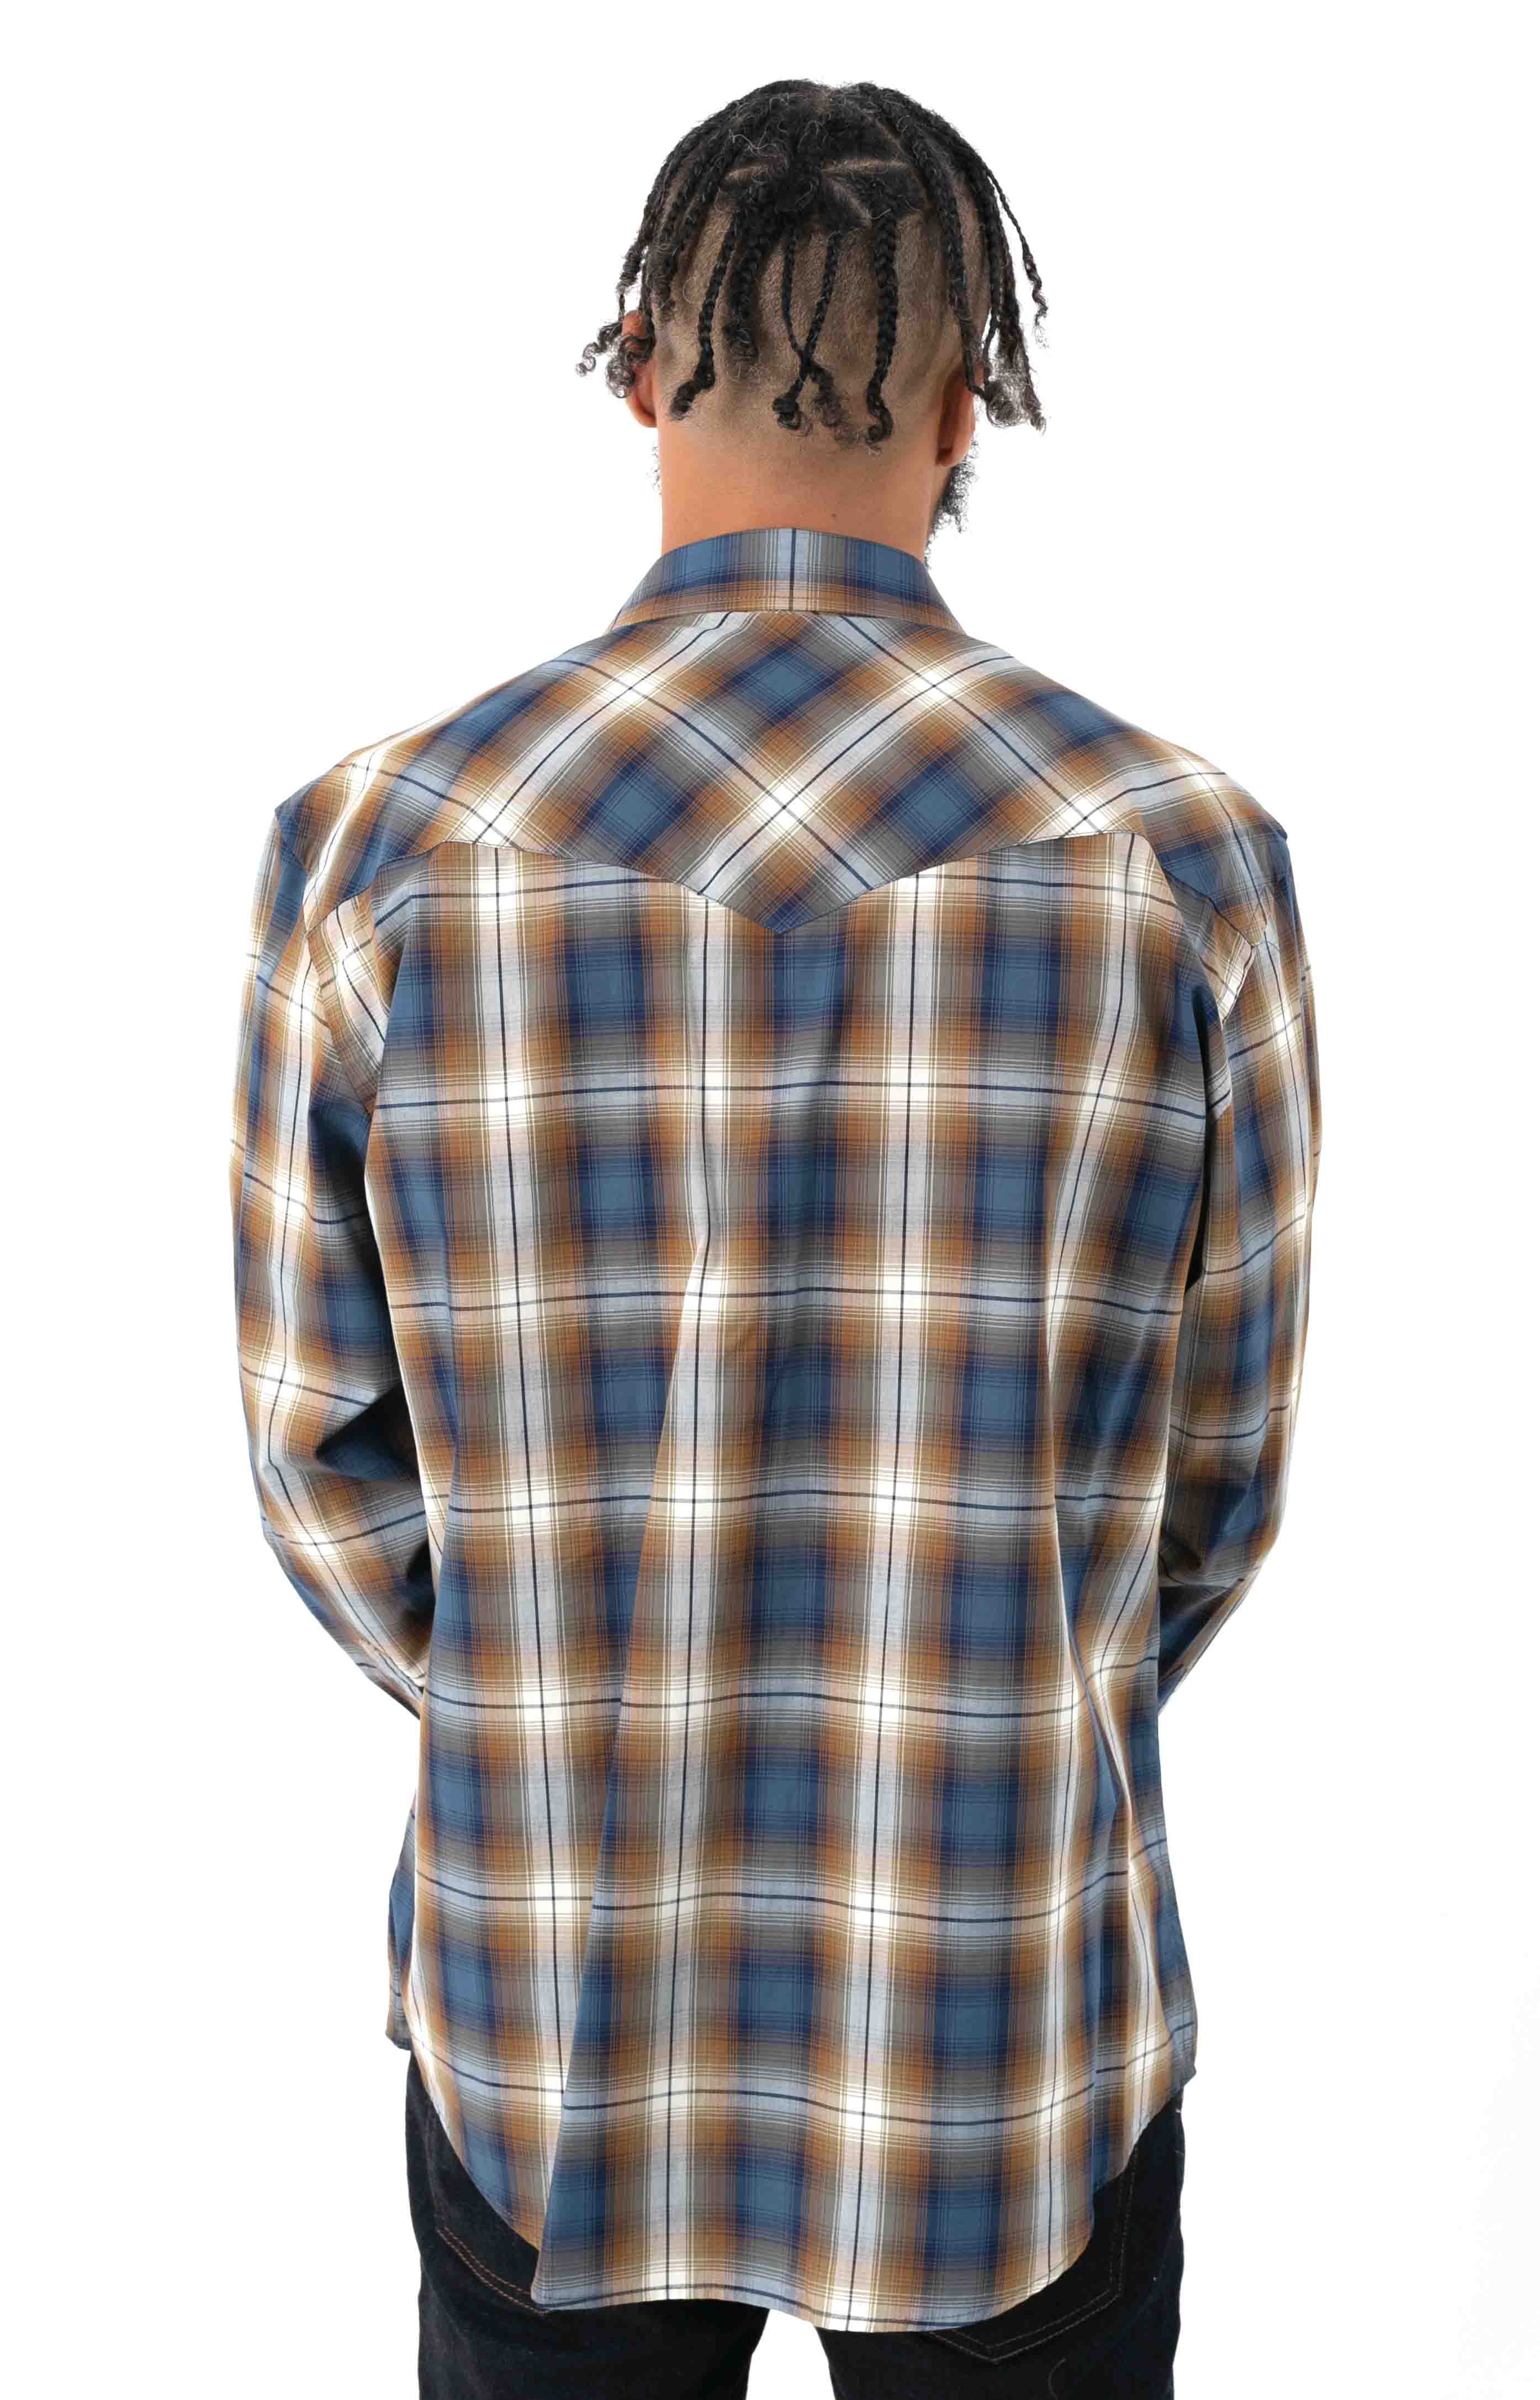 Frontier L/S Button-Up Shirt - Blue/Navy/Brown Plaid  3